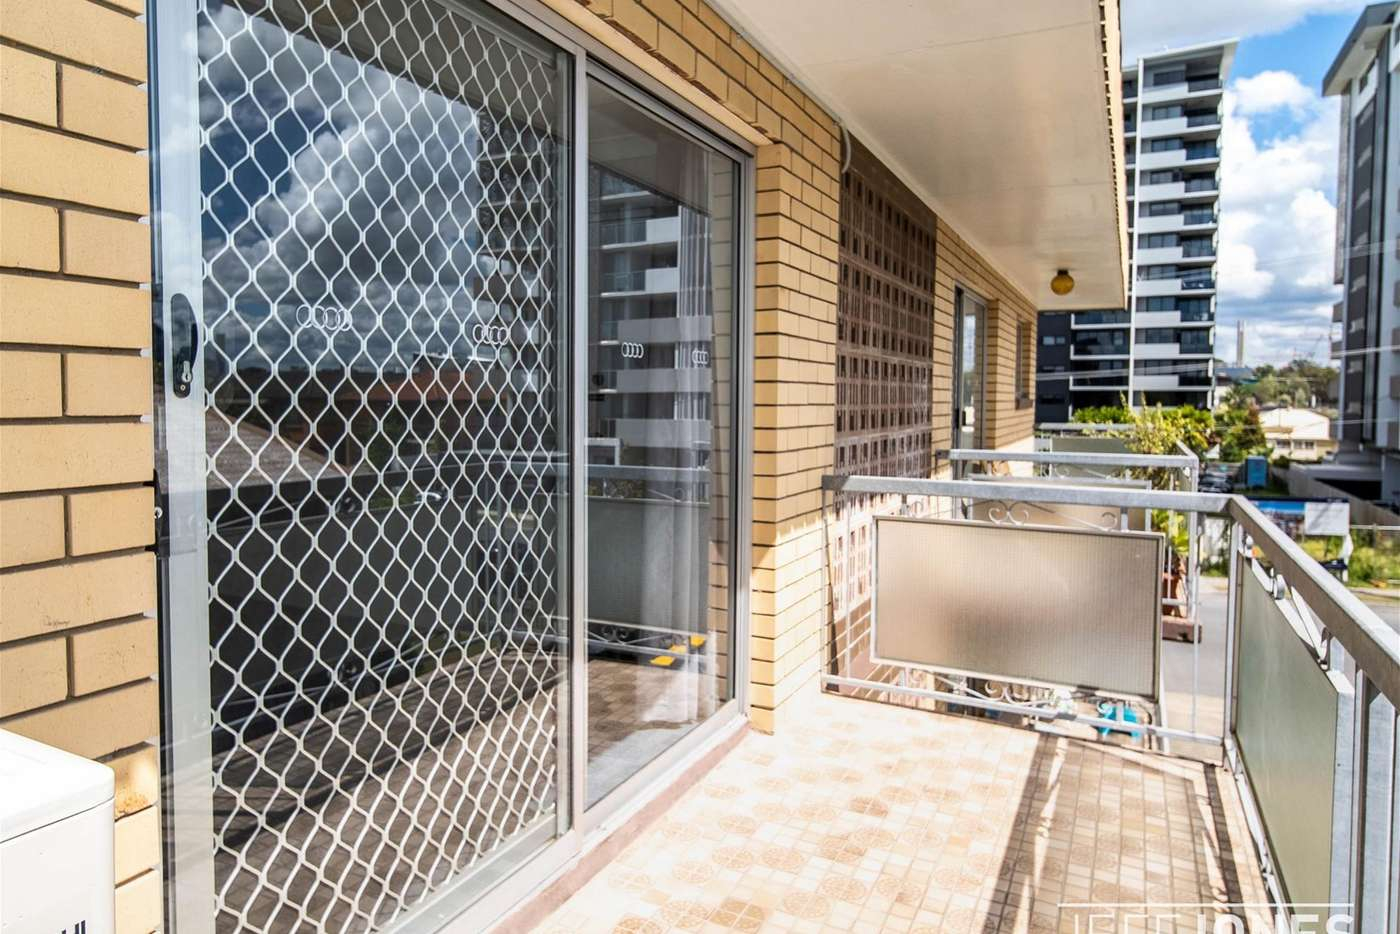 Main view of Homely unit listing, 6/24 Carl Street, Woolloongabba QLD 4102